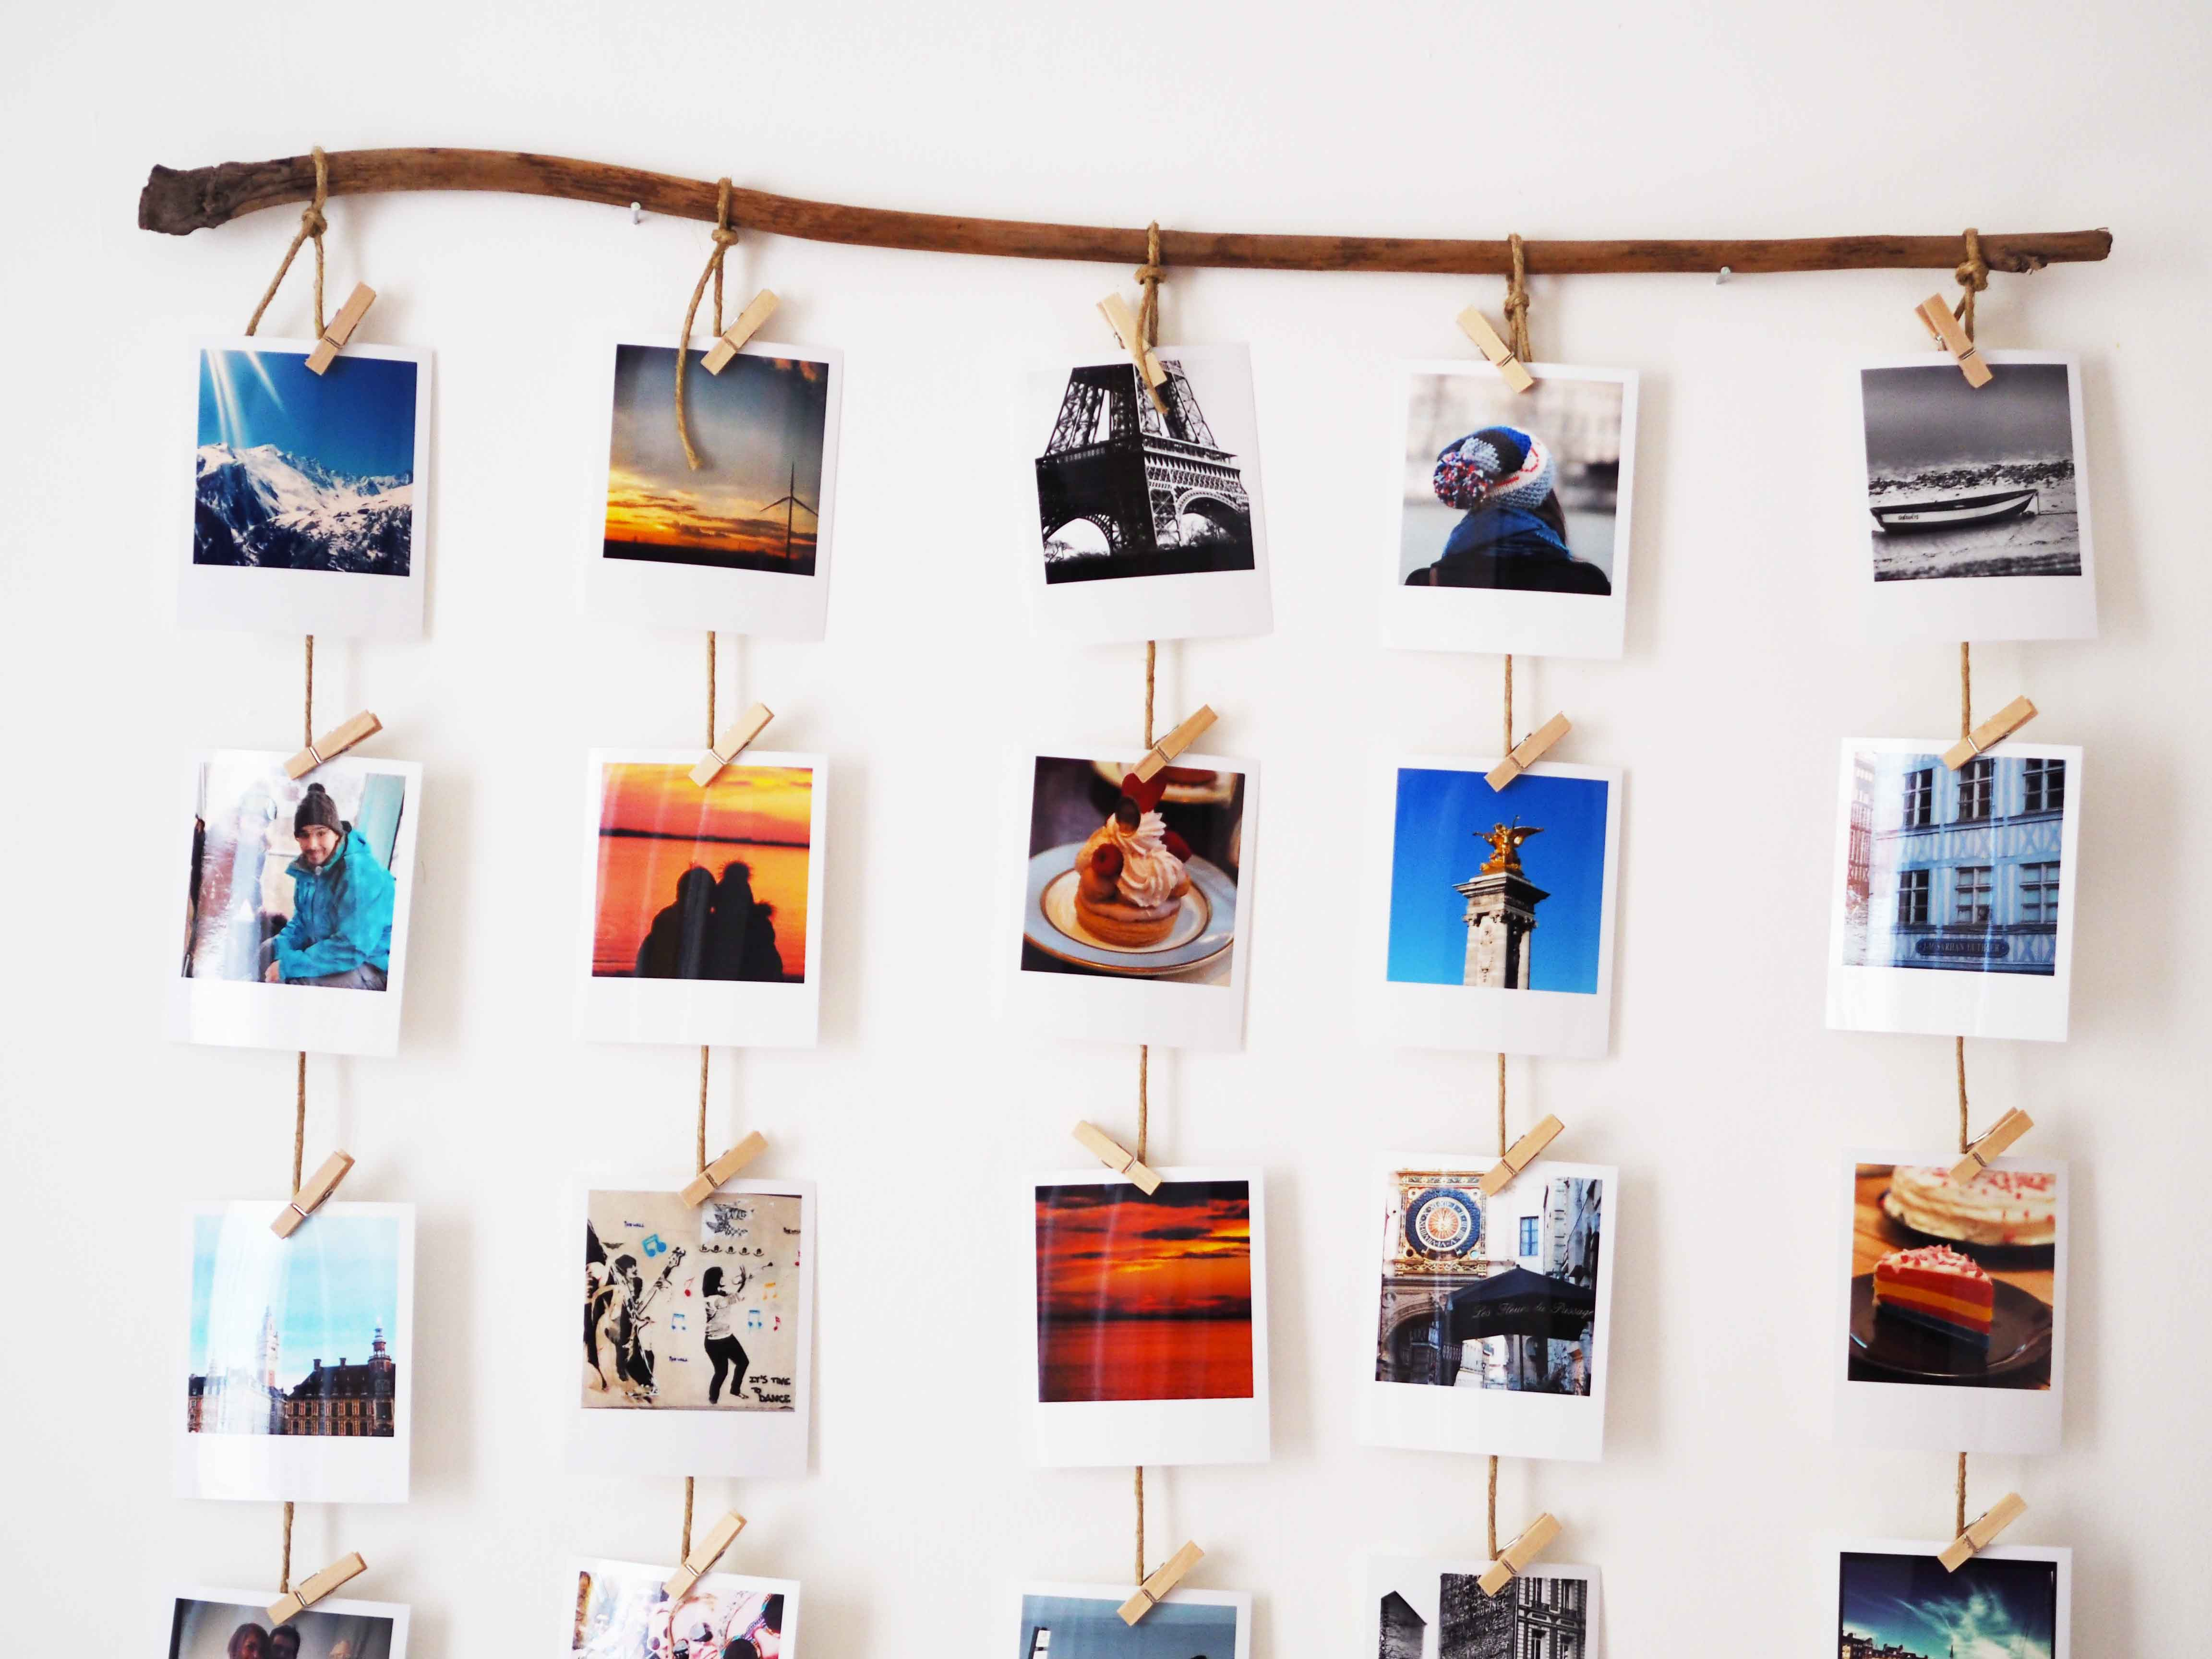 Cadre Photo Pour Polaroid Diy Comment Accrocher Ses Photos Polaroïd Like A Bobo